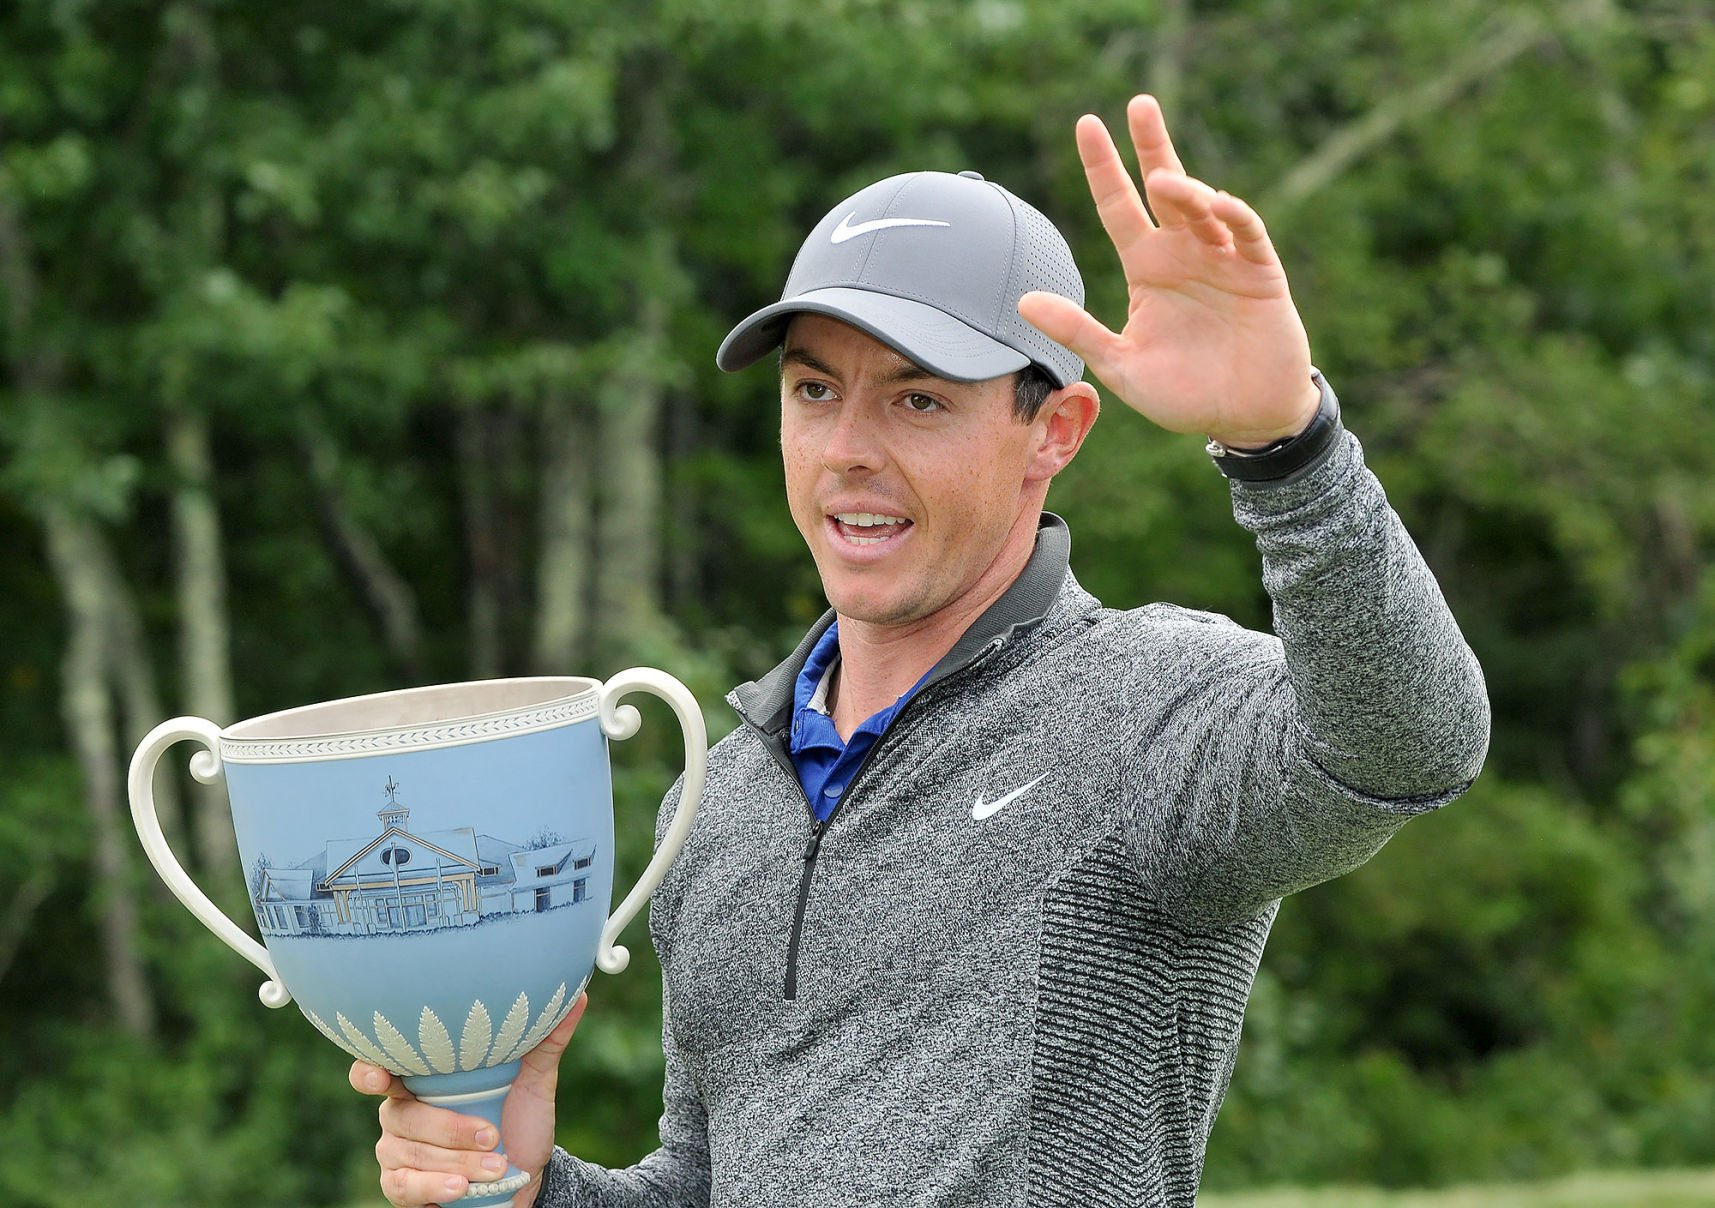 Rory McIlroy feels right at home at TPC Boston